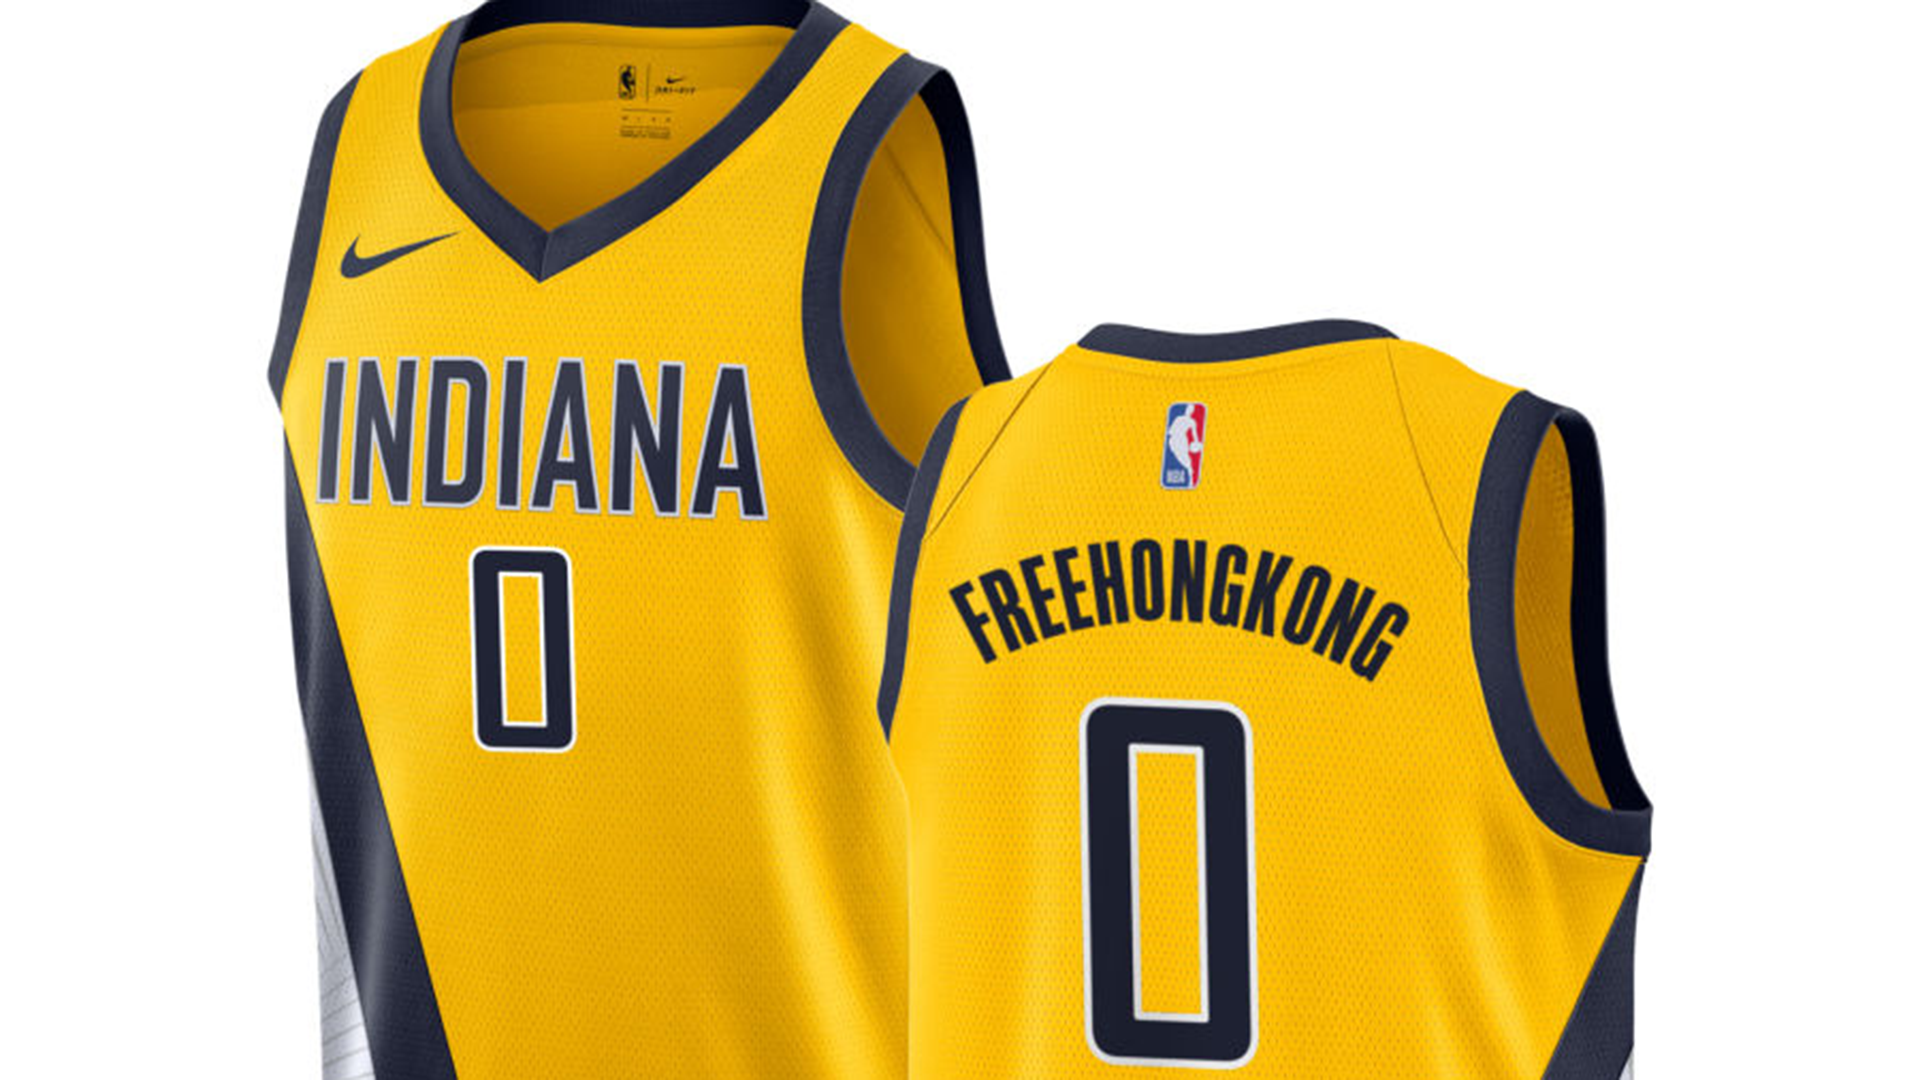 NBA store says \'Free Hong Kong\' was \'inadvertently prohibited